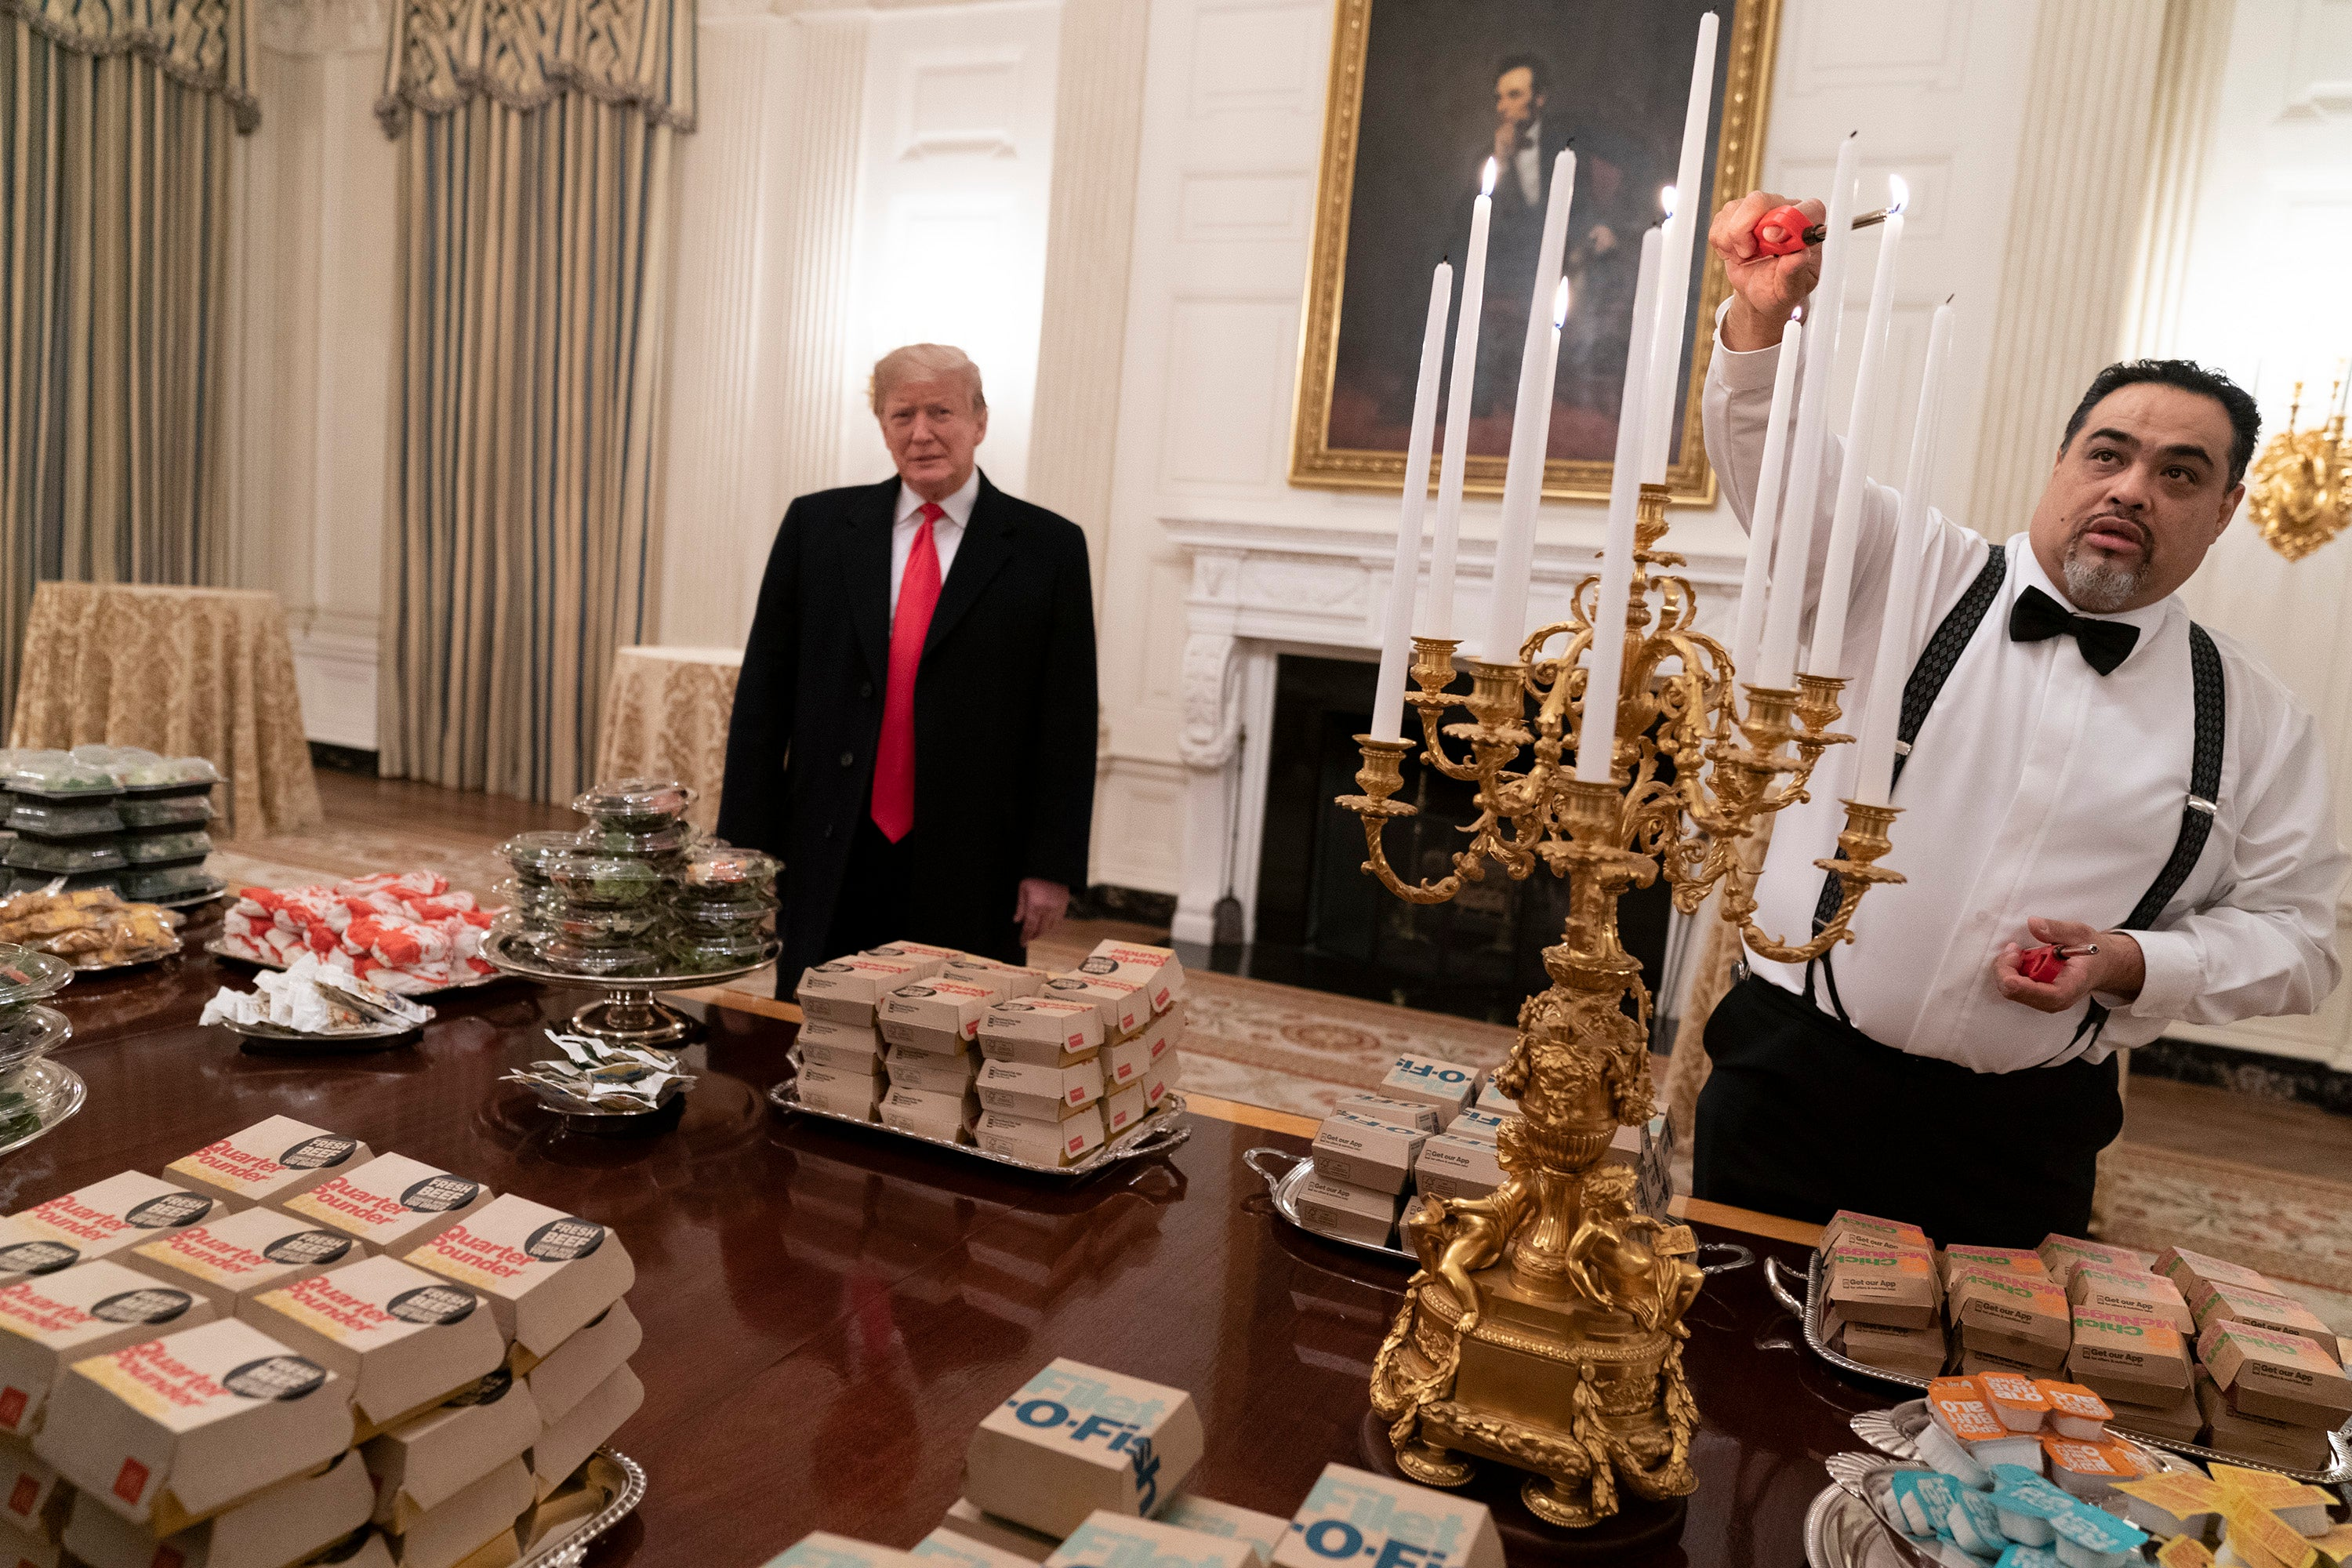 Trump stands in front of a table covered in fast food with a portrait of Abraham Lincoln behind him.